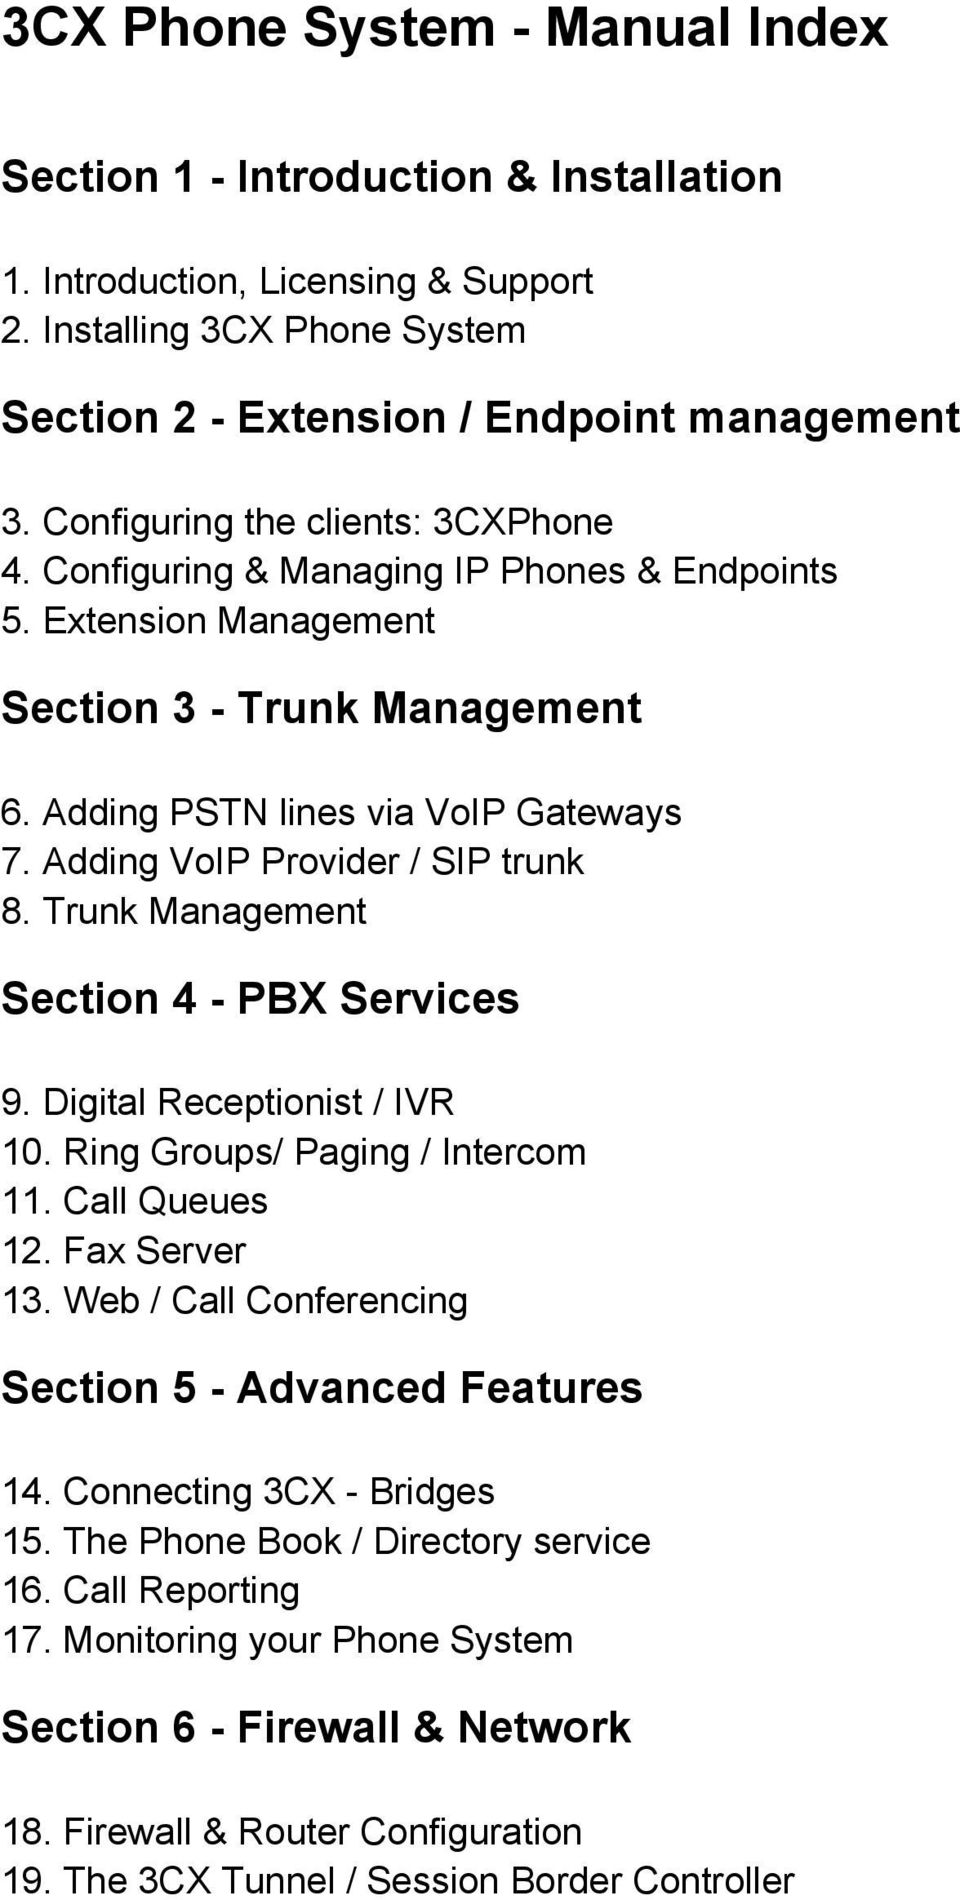 Adding VoIP Provider / SIP trunk 8. Trunk Management Section 4 - PBX Services 9. Digital Receptionist / IVR 10. Ring Groups/ Paging / Intercom 11. Call Queues 12. Fax Server 13.